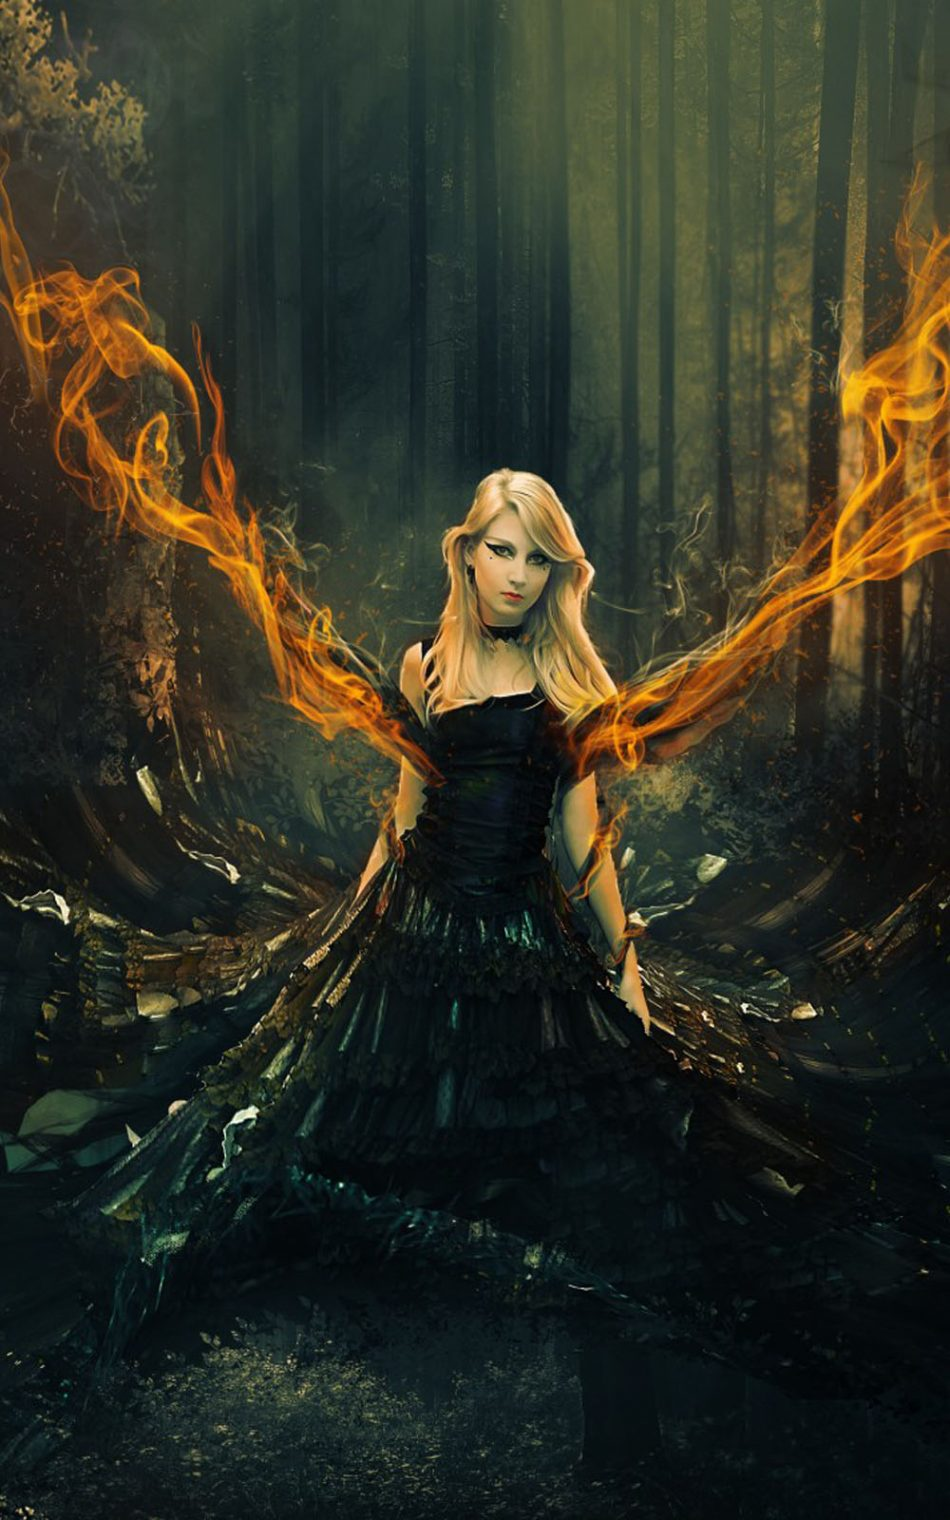 Fantasy Girl Flame Forest Surreal Hd Mobile Wallpaper - Fantasy Girl Wallpaper Phone , HD Wallpaper & Backgrounds